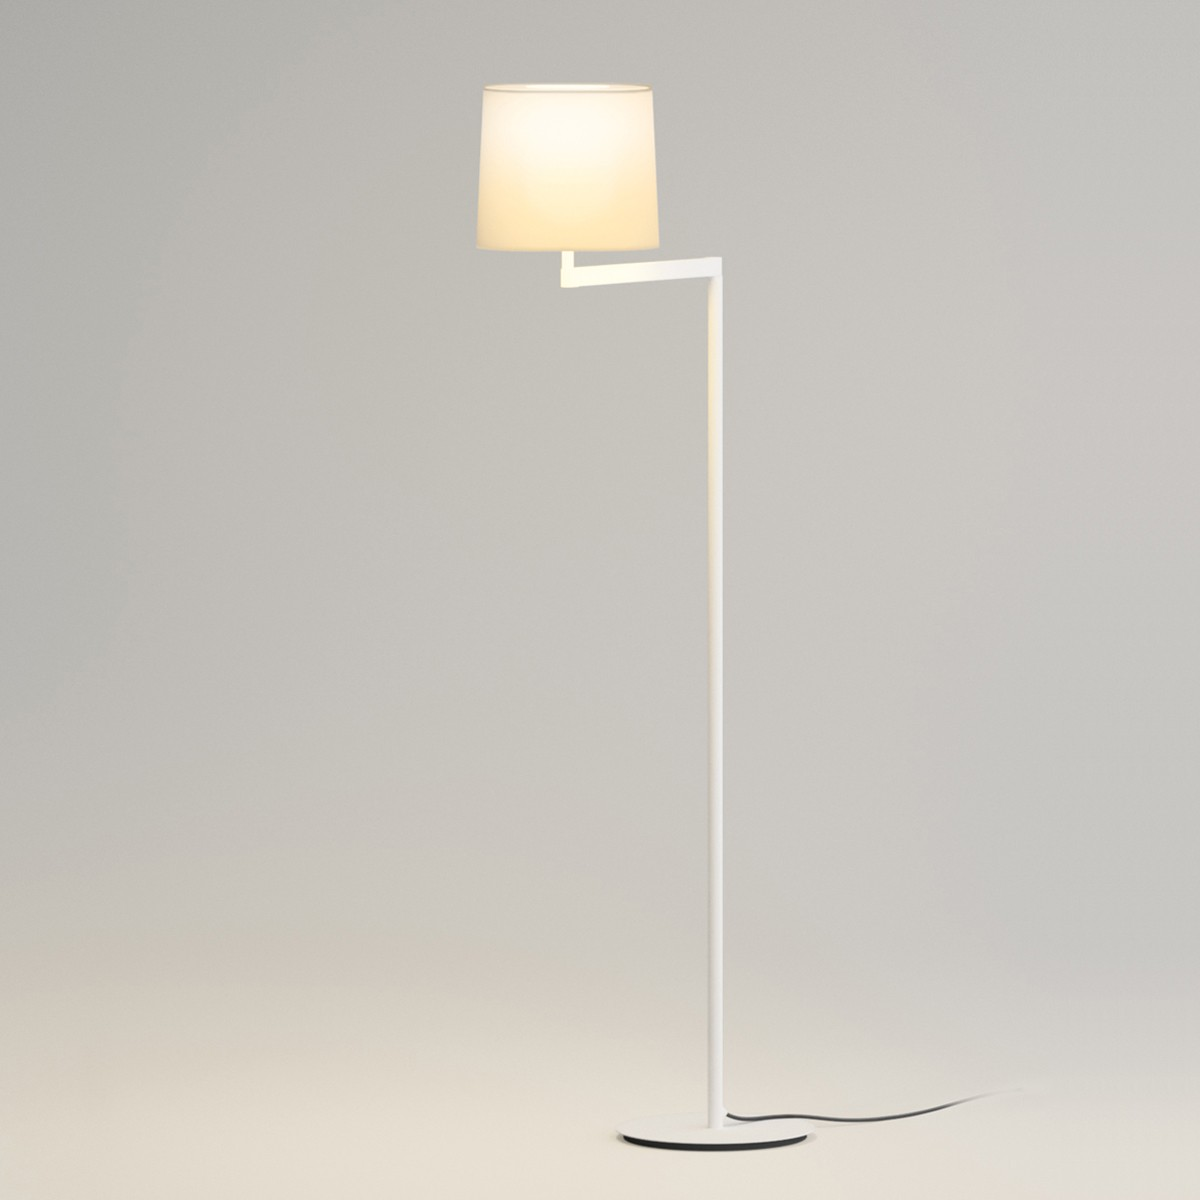 Vibia Swing 0503 Stehleuchte, Chrom